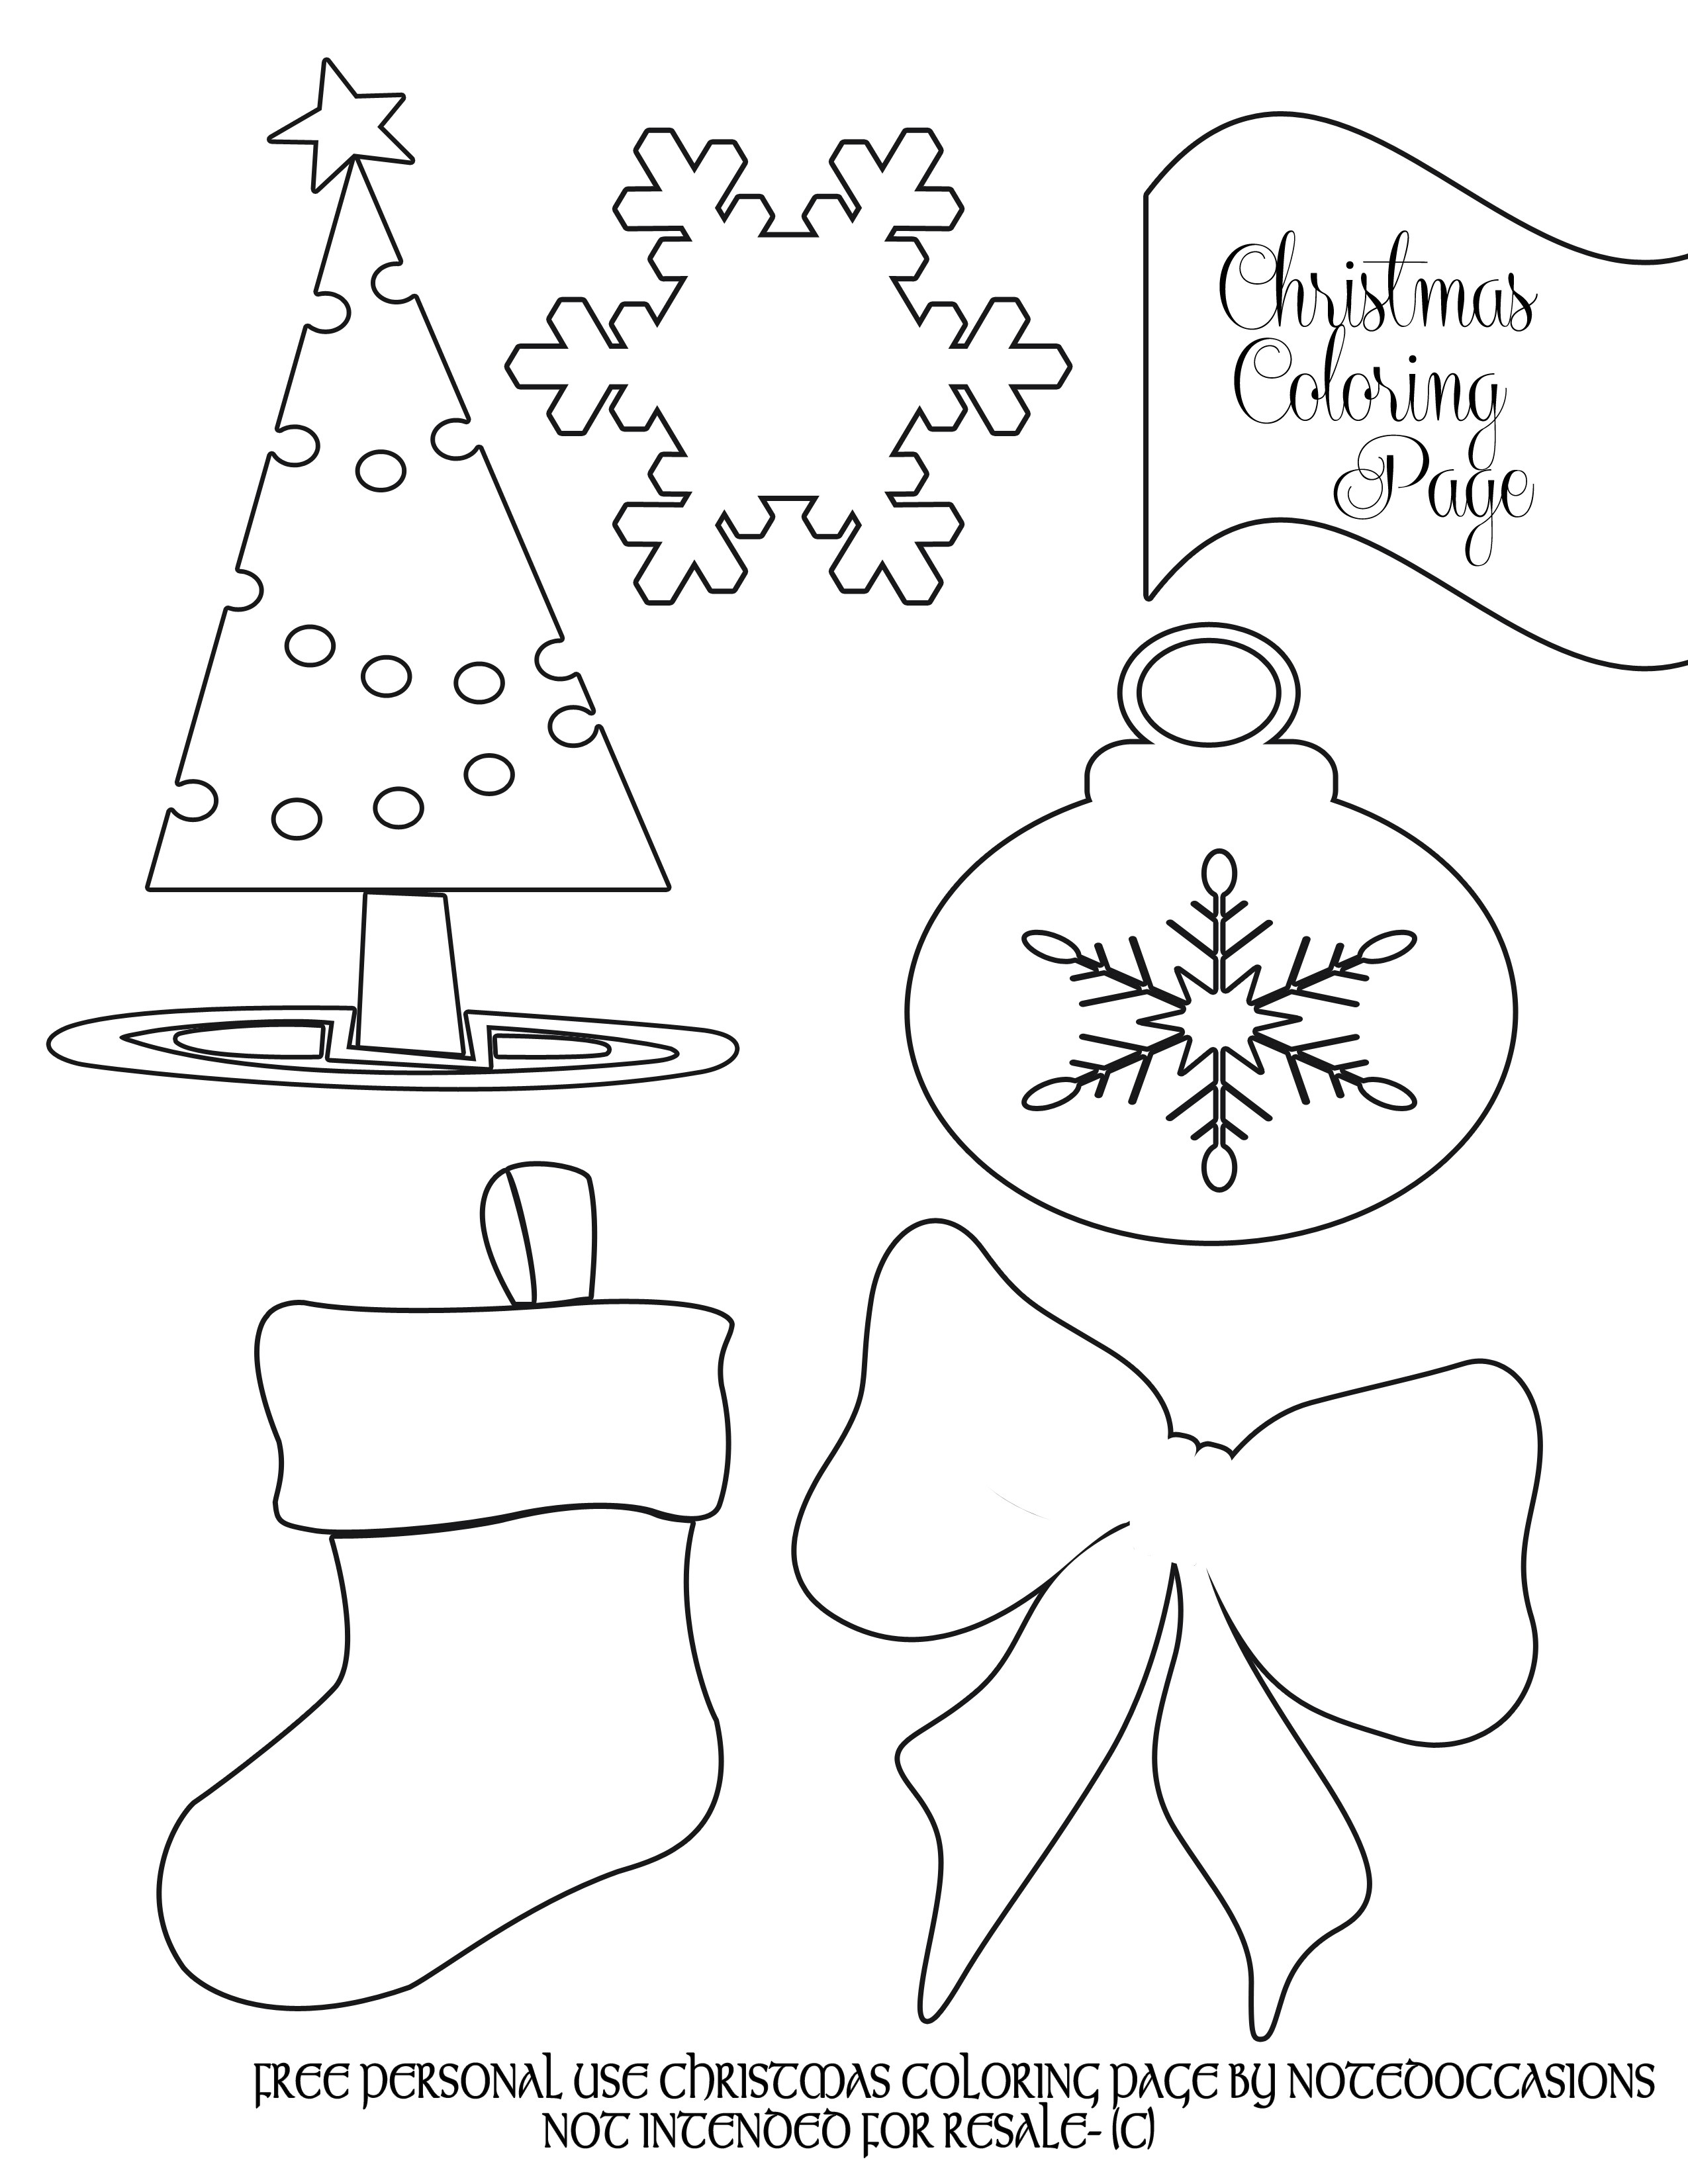 Christmas Coloring Images Free With Party Simplicity Pages To Print